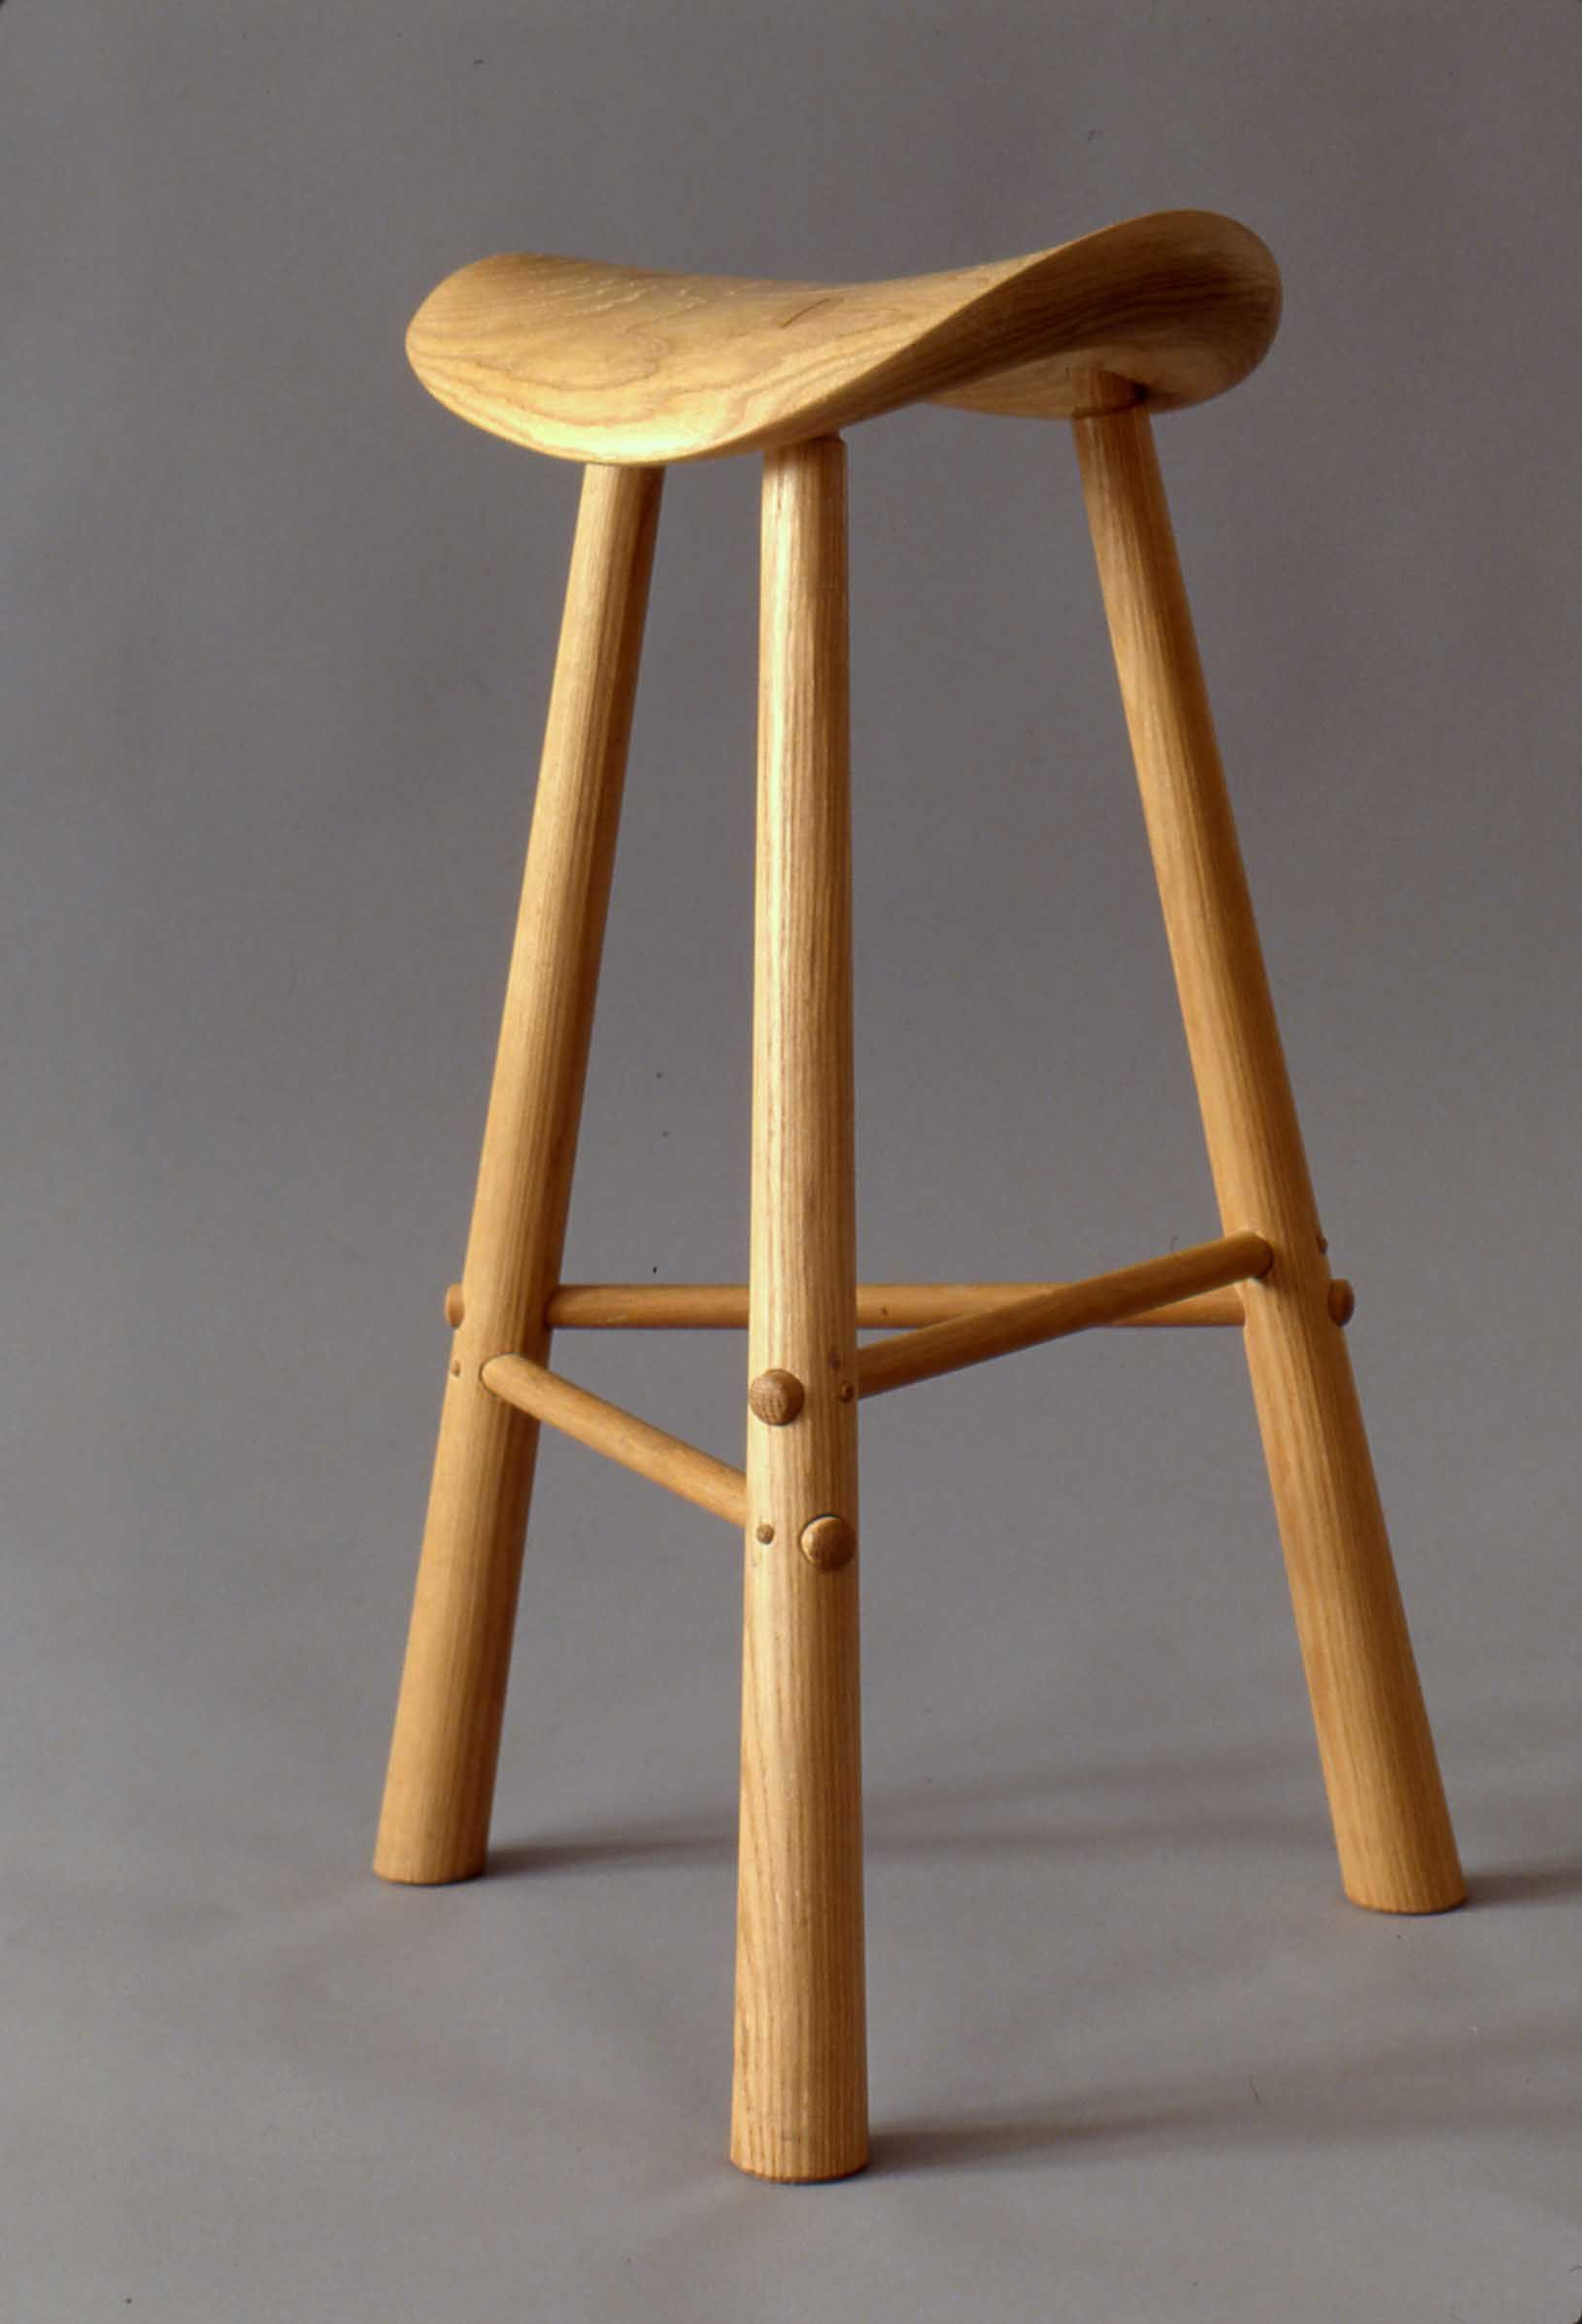 3 Legged Chair That Stand You Up Three Stool White Ash Furniture By Design